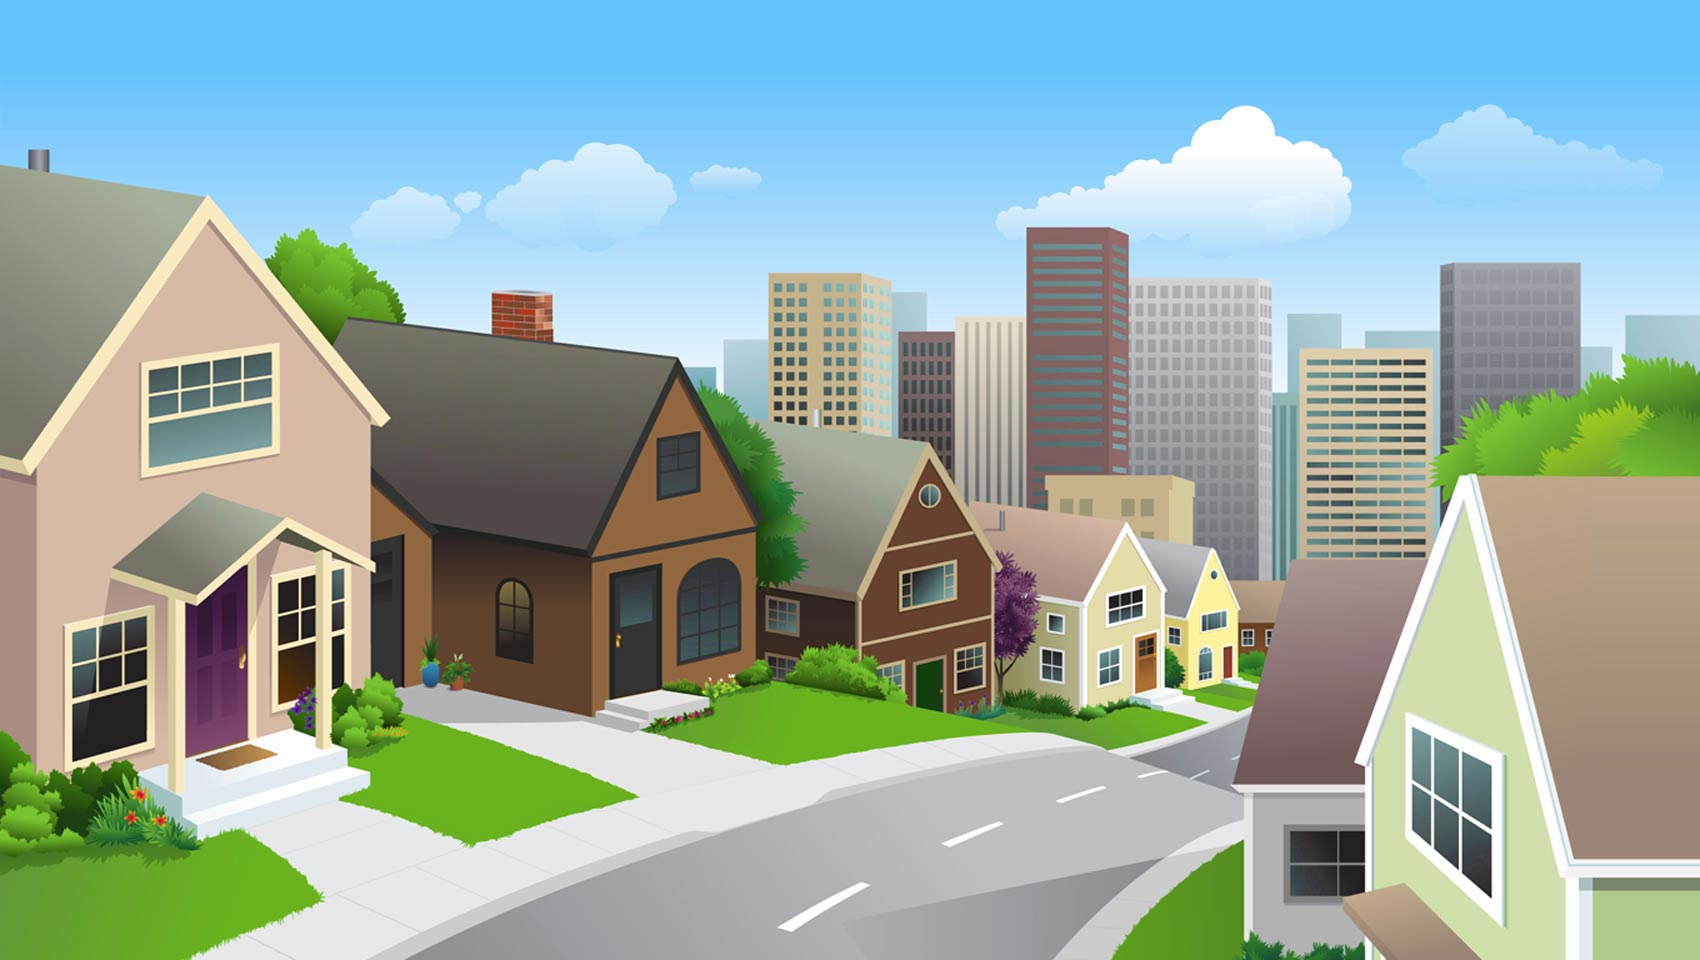 Neighborhood clipart social. Free cliparts download clip